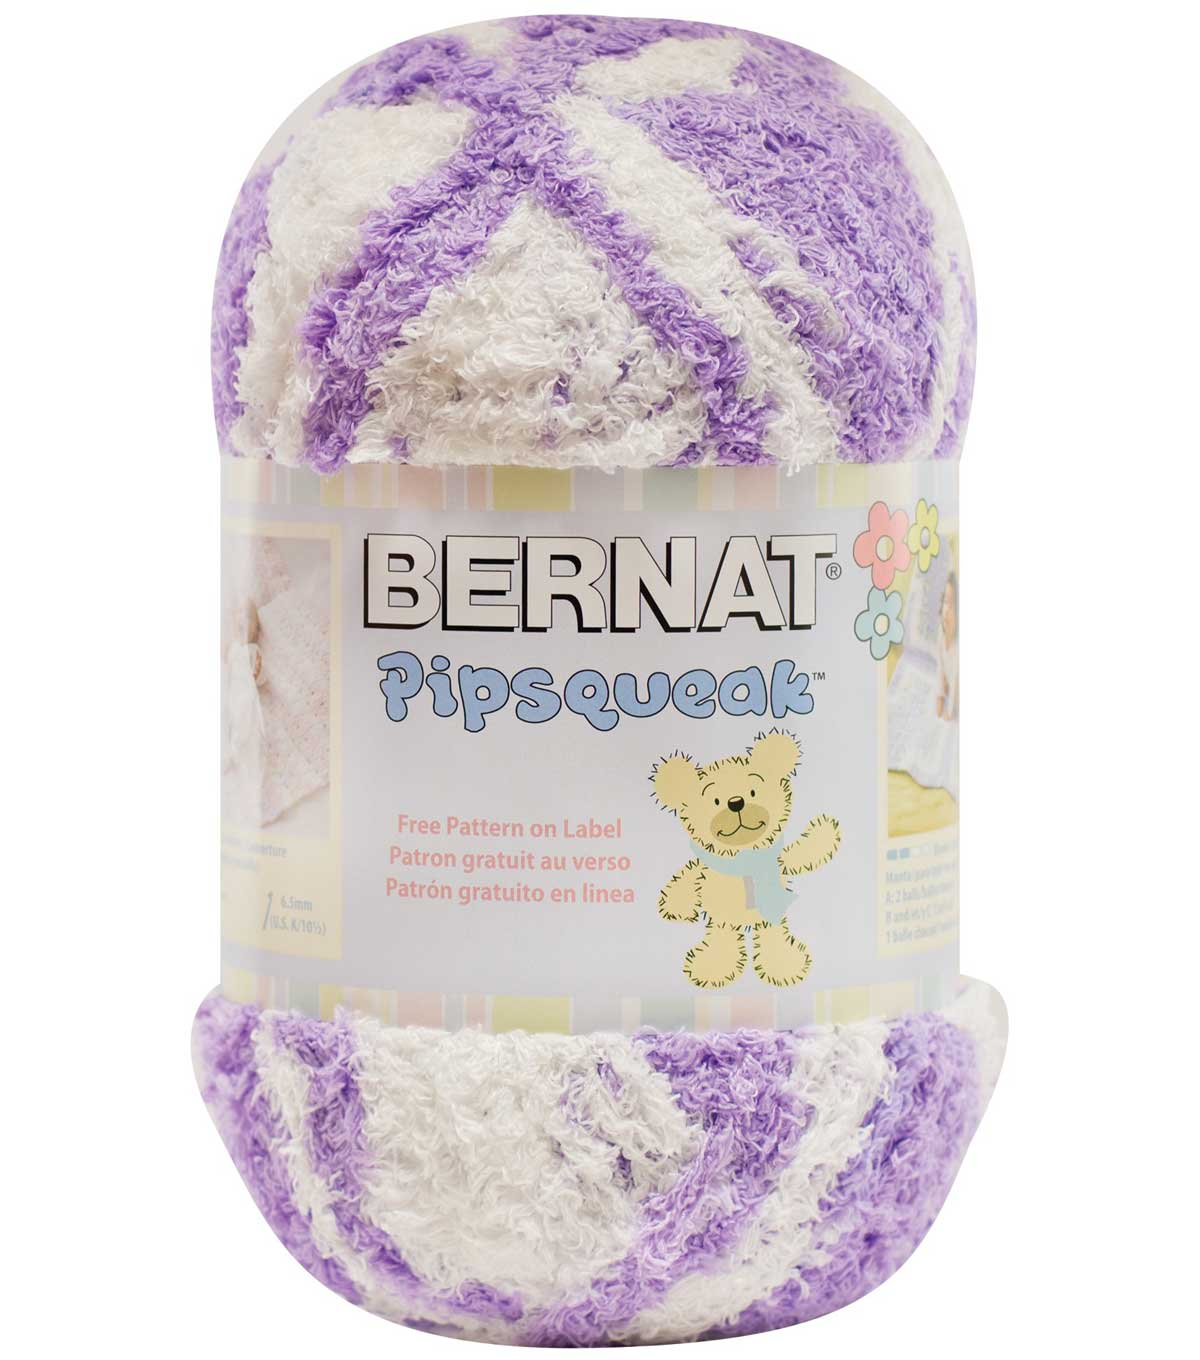 Bernat Pipsqueak Big Ball Yarn